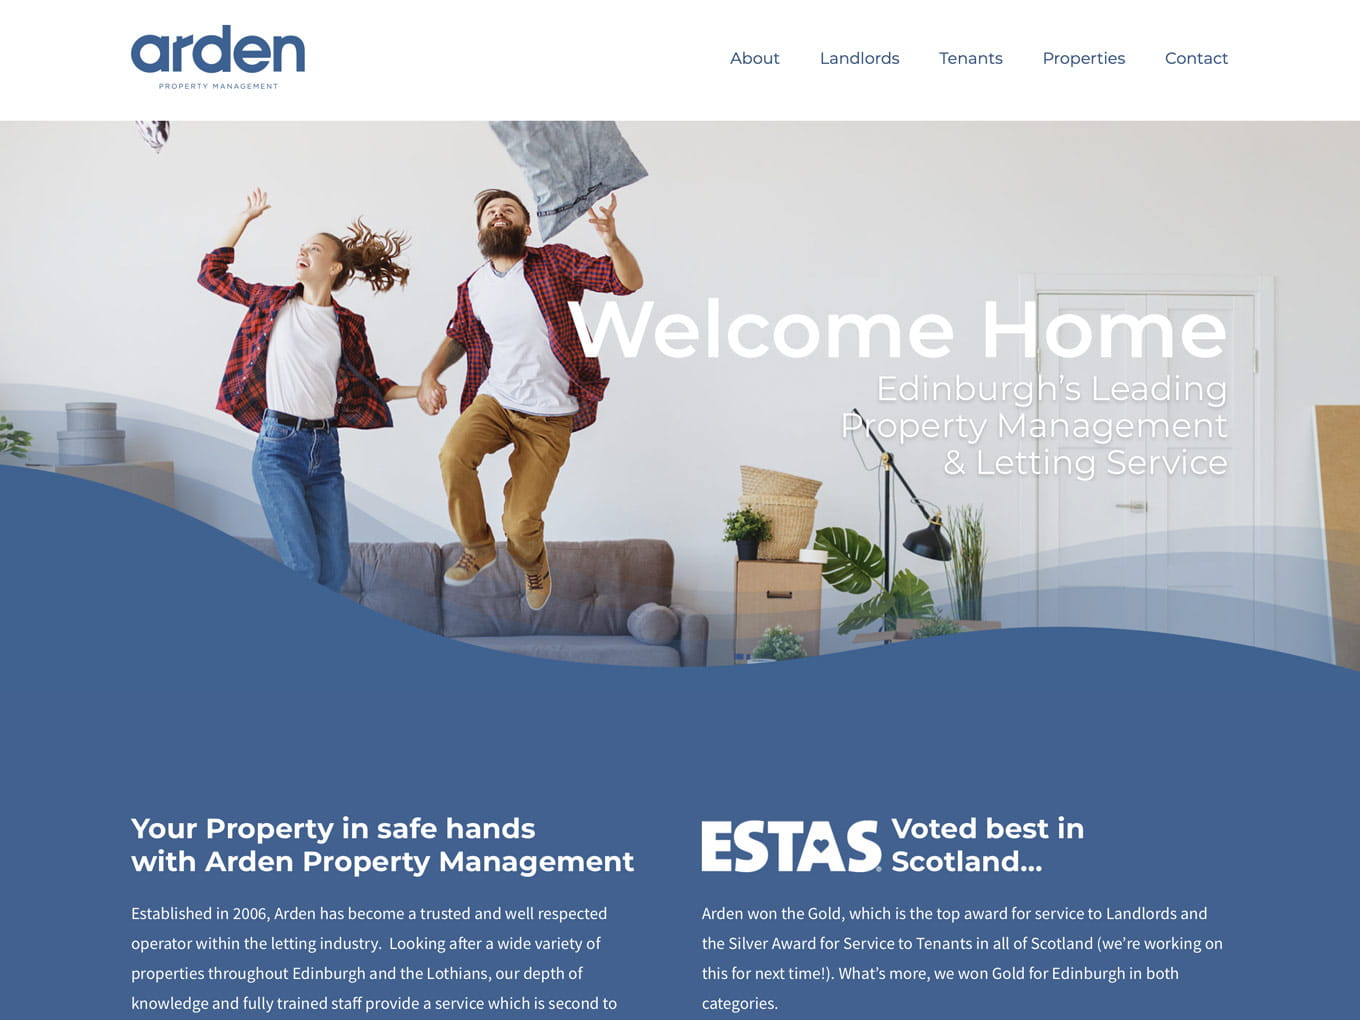 Arden Property Management website design